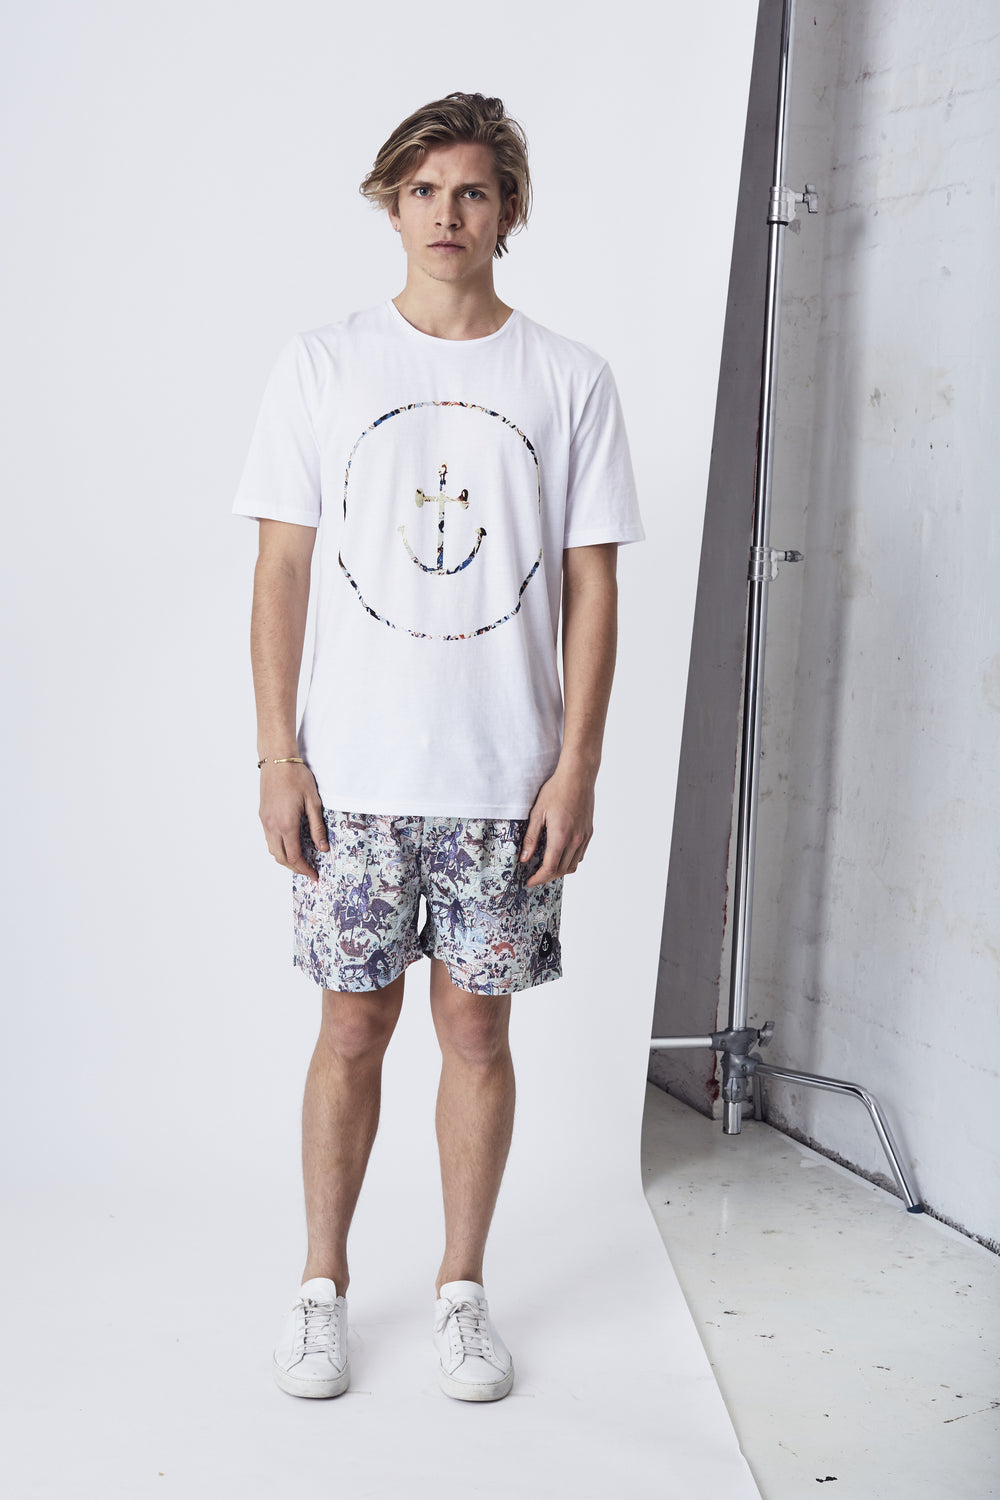 Persian Smiley Face Tee // White